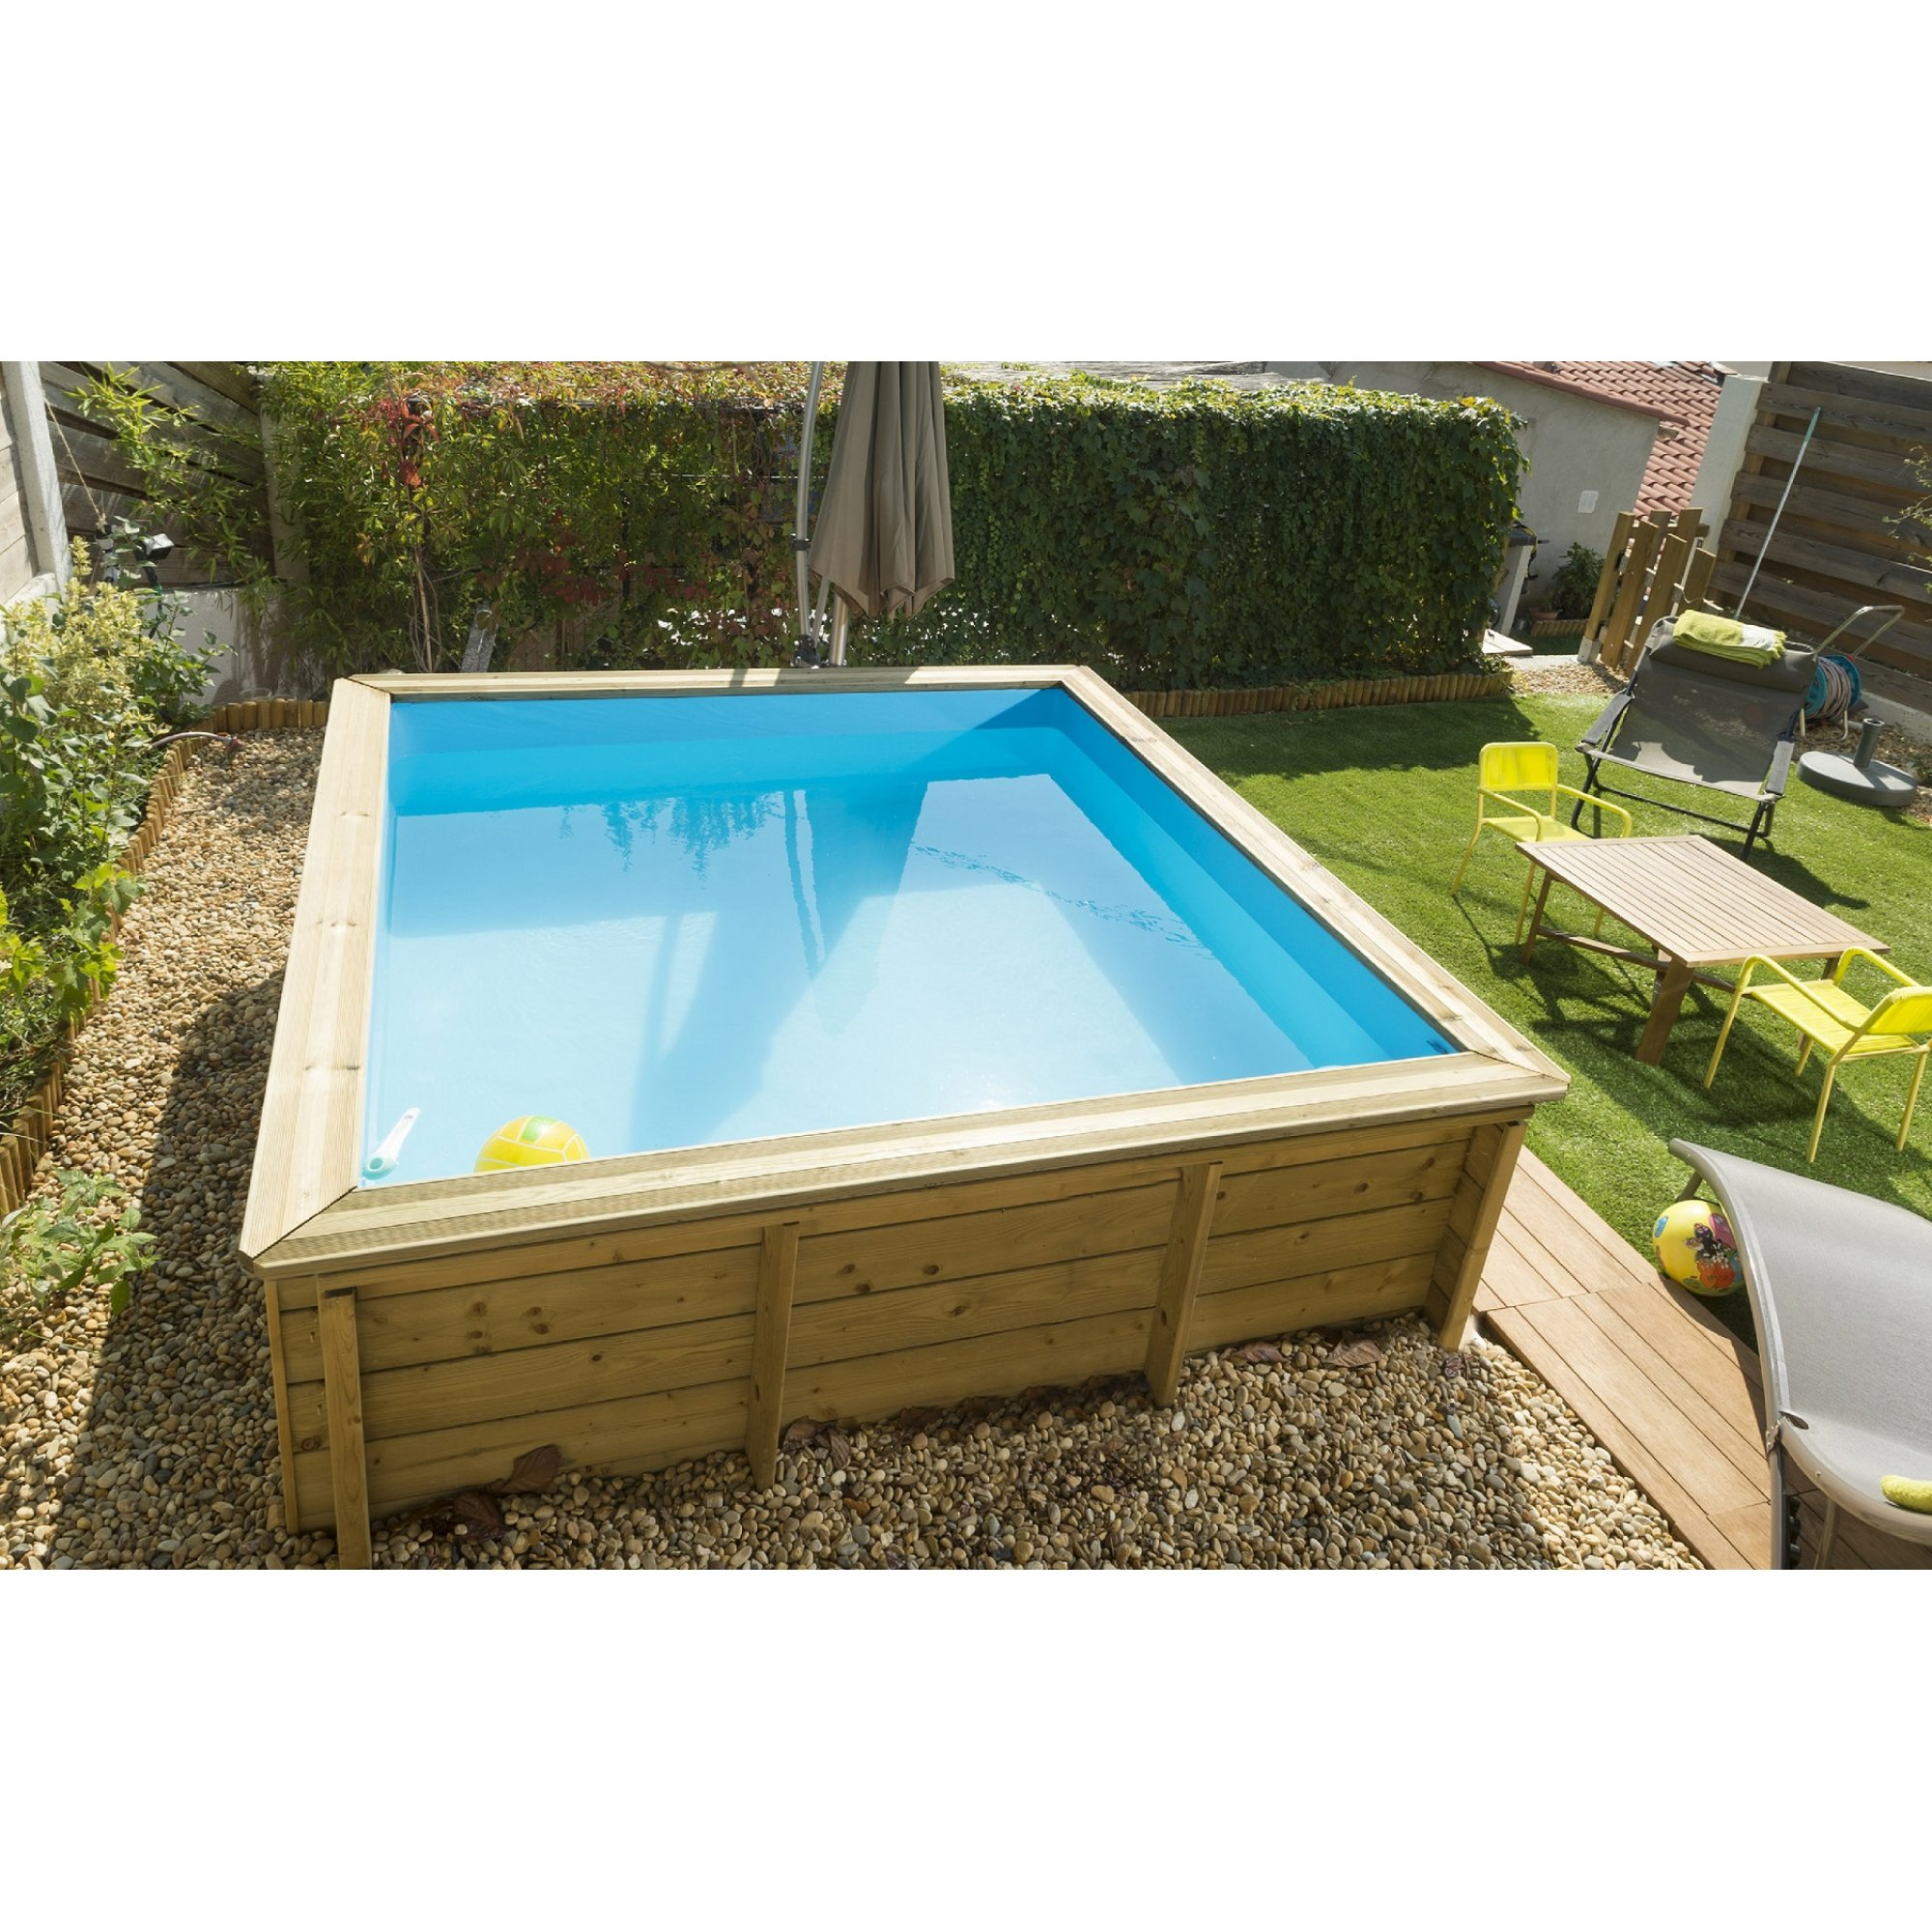 Mini holzpool f r jeden garten 679 00 for Piscine gonflable 2m